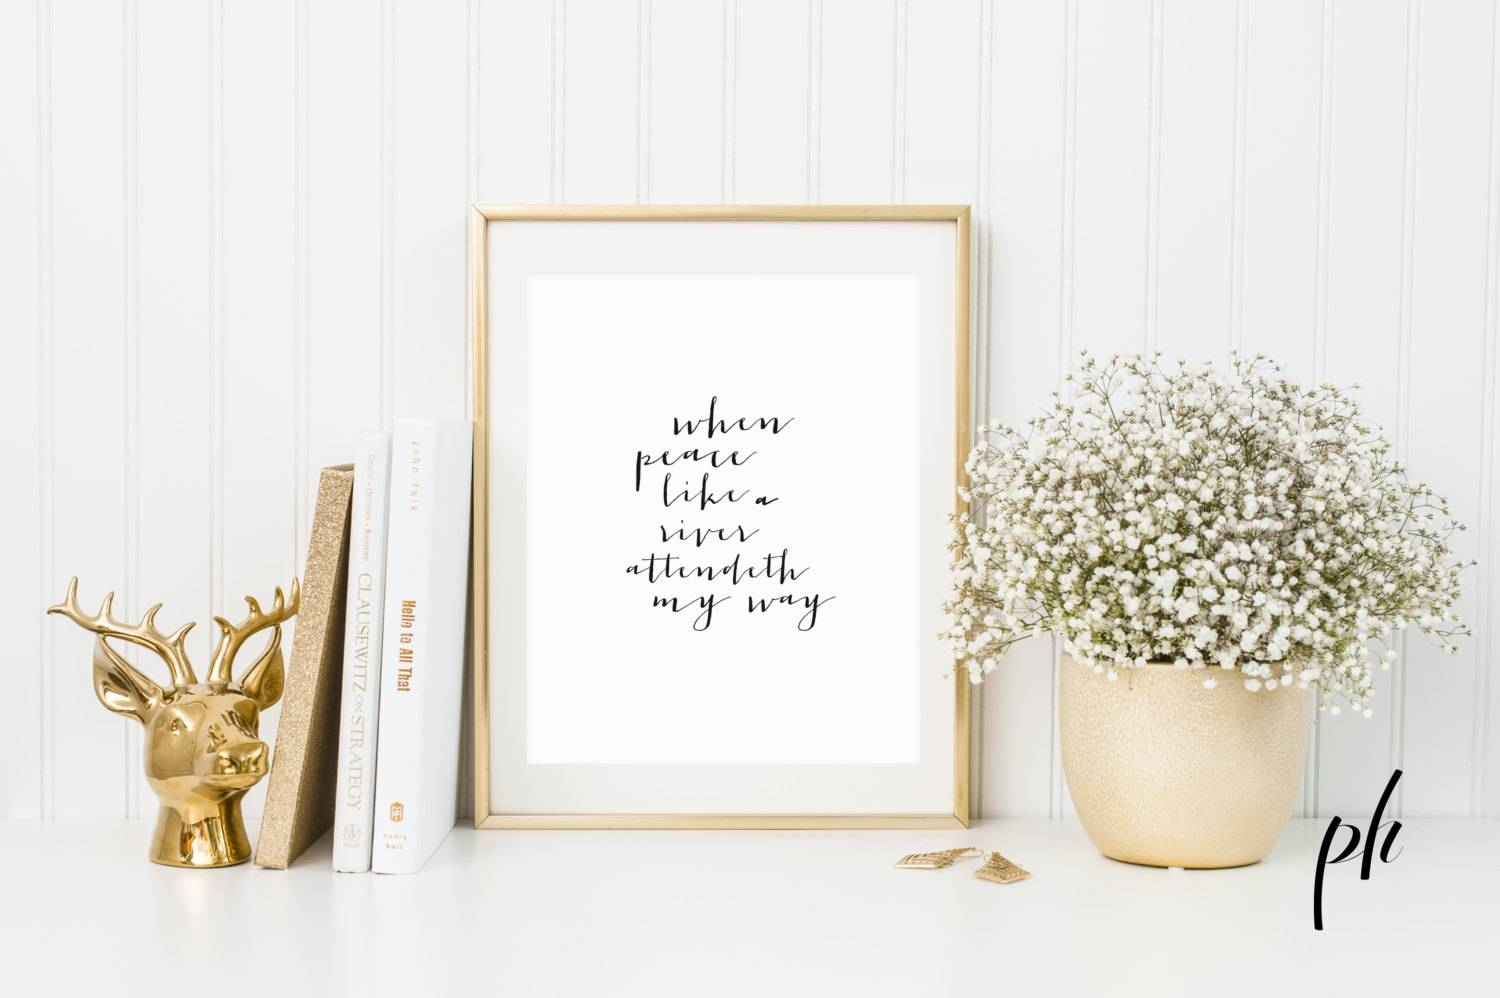 Hymn Print Hymns Hymn Art Hymns And Verses Calligraphy Pertaining To Latest Bible Verses Framed Art (View 13 of 25)